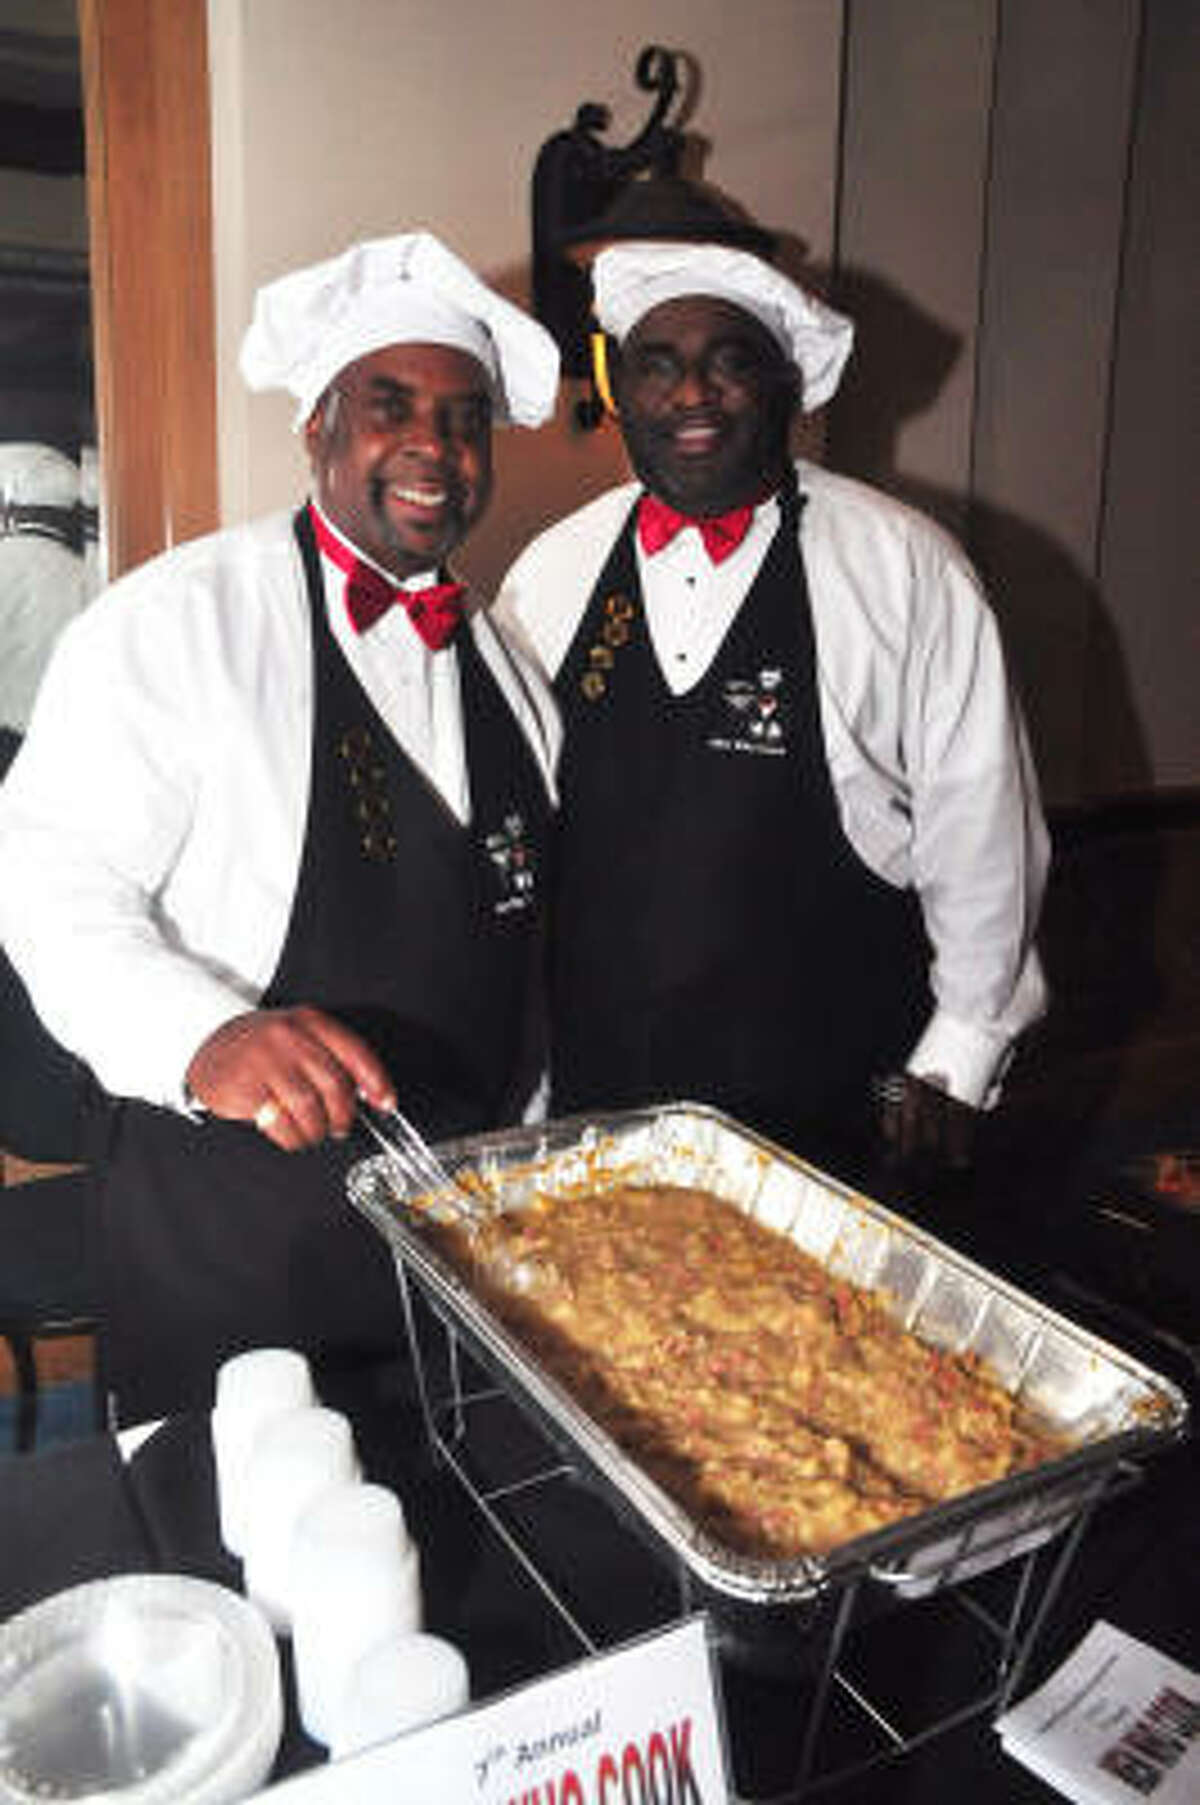 James Jones and Marlon Brown show off their food at the League City Chamber of Commerce's Men Who Cook event at South Shore Harbour Resort in League City.